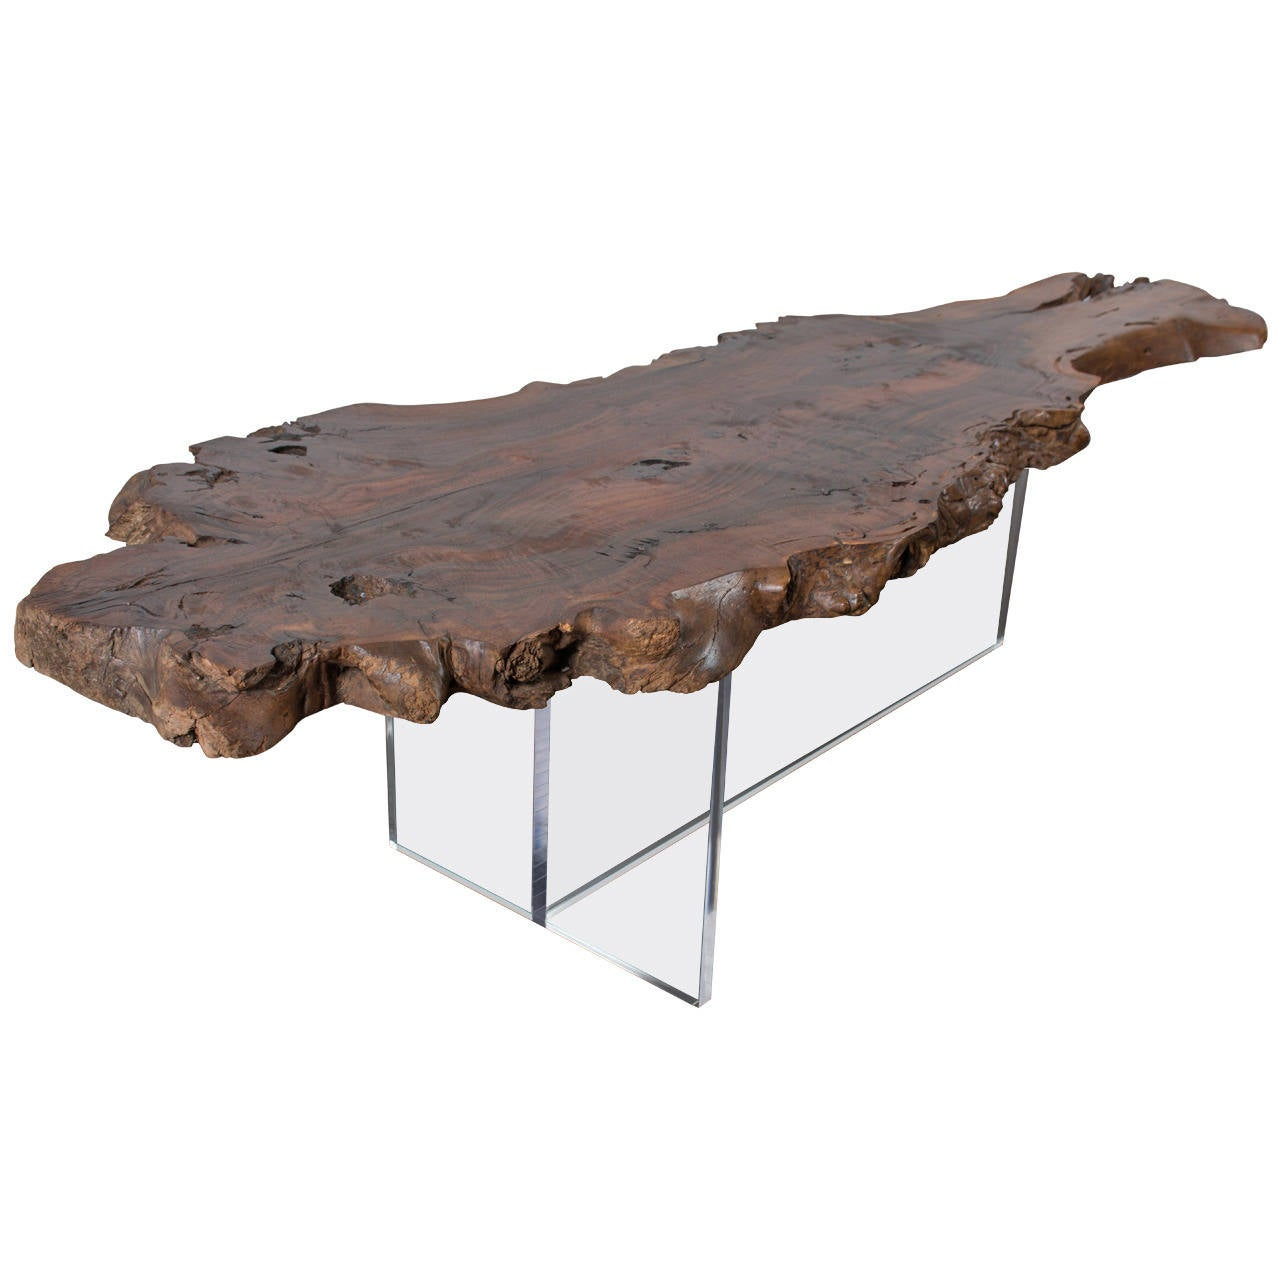 Wood slab and lucite coffee table at 1stdibs for Wood slab coffee table